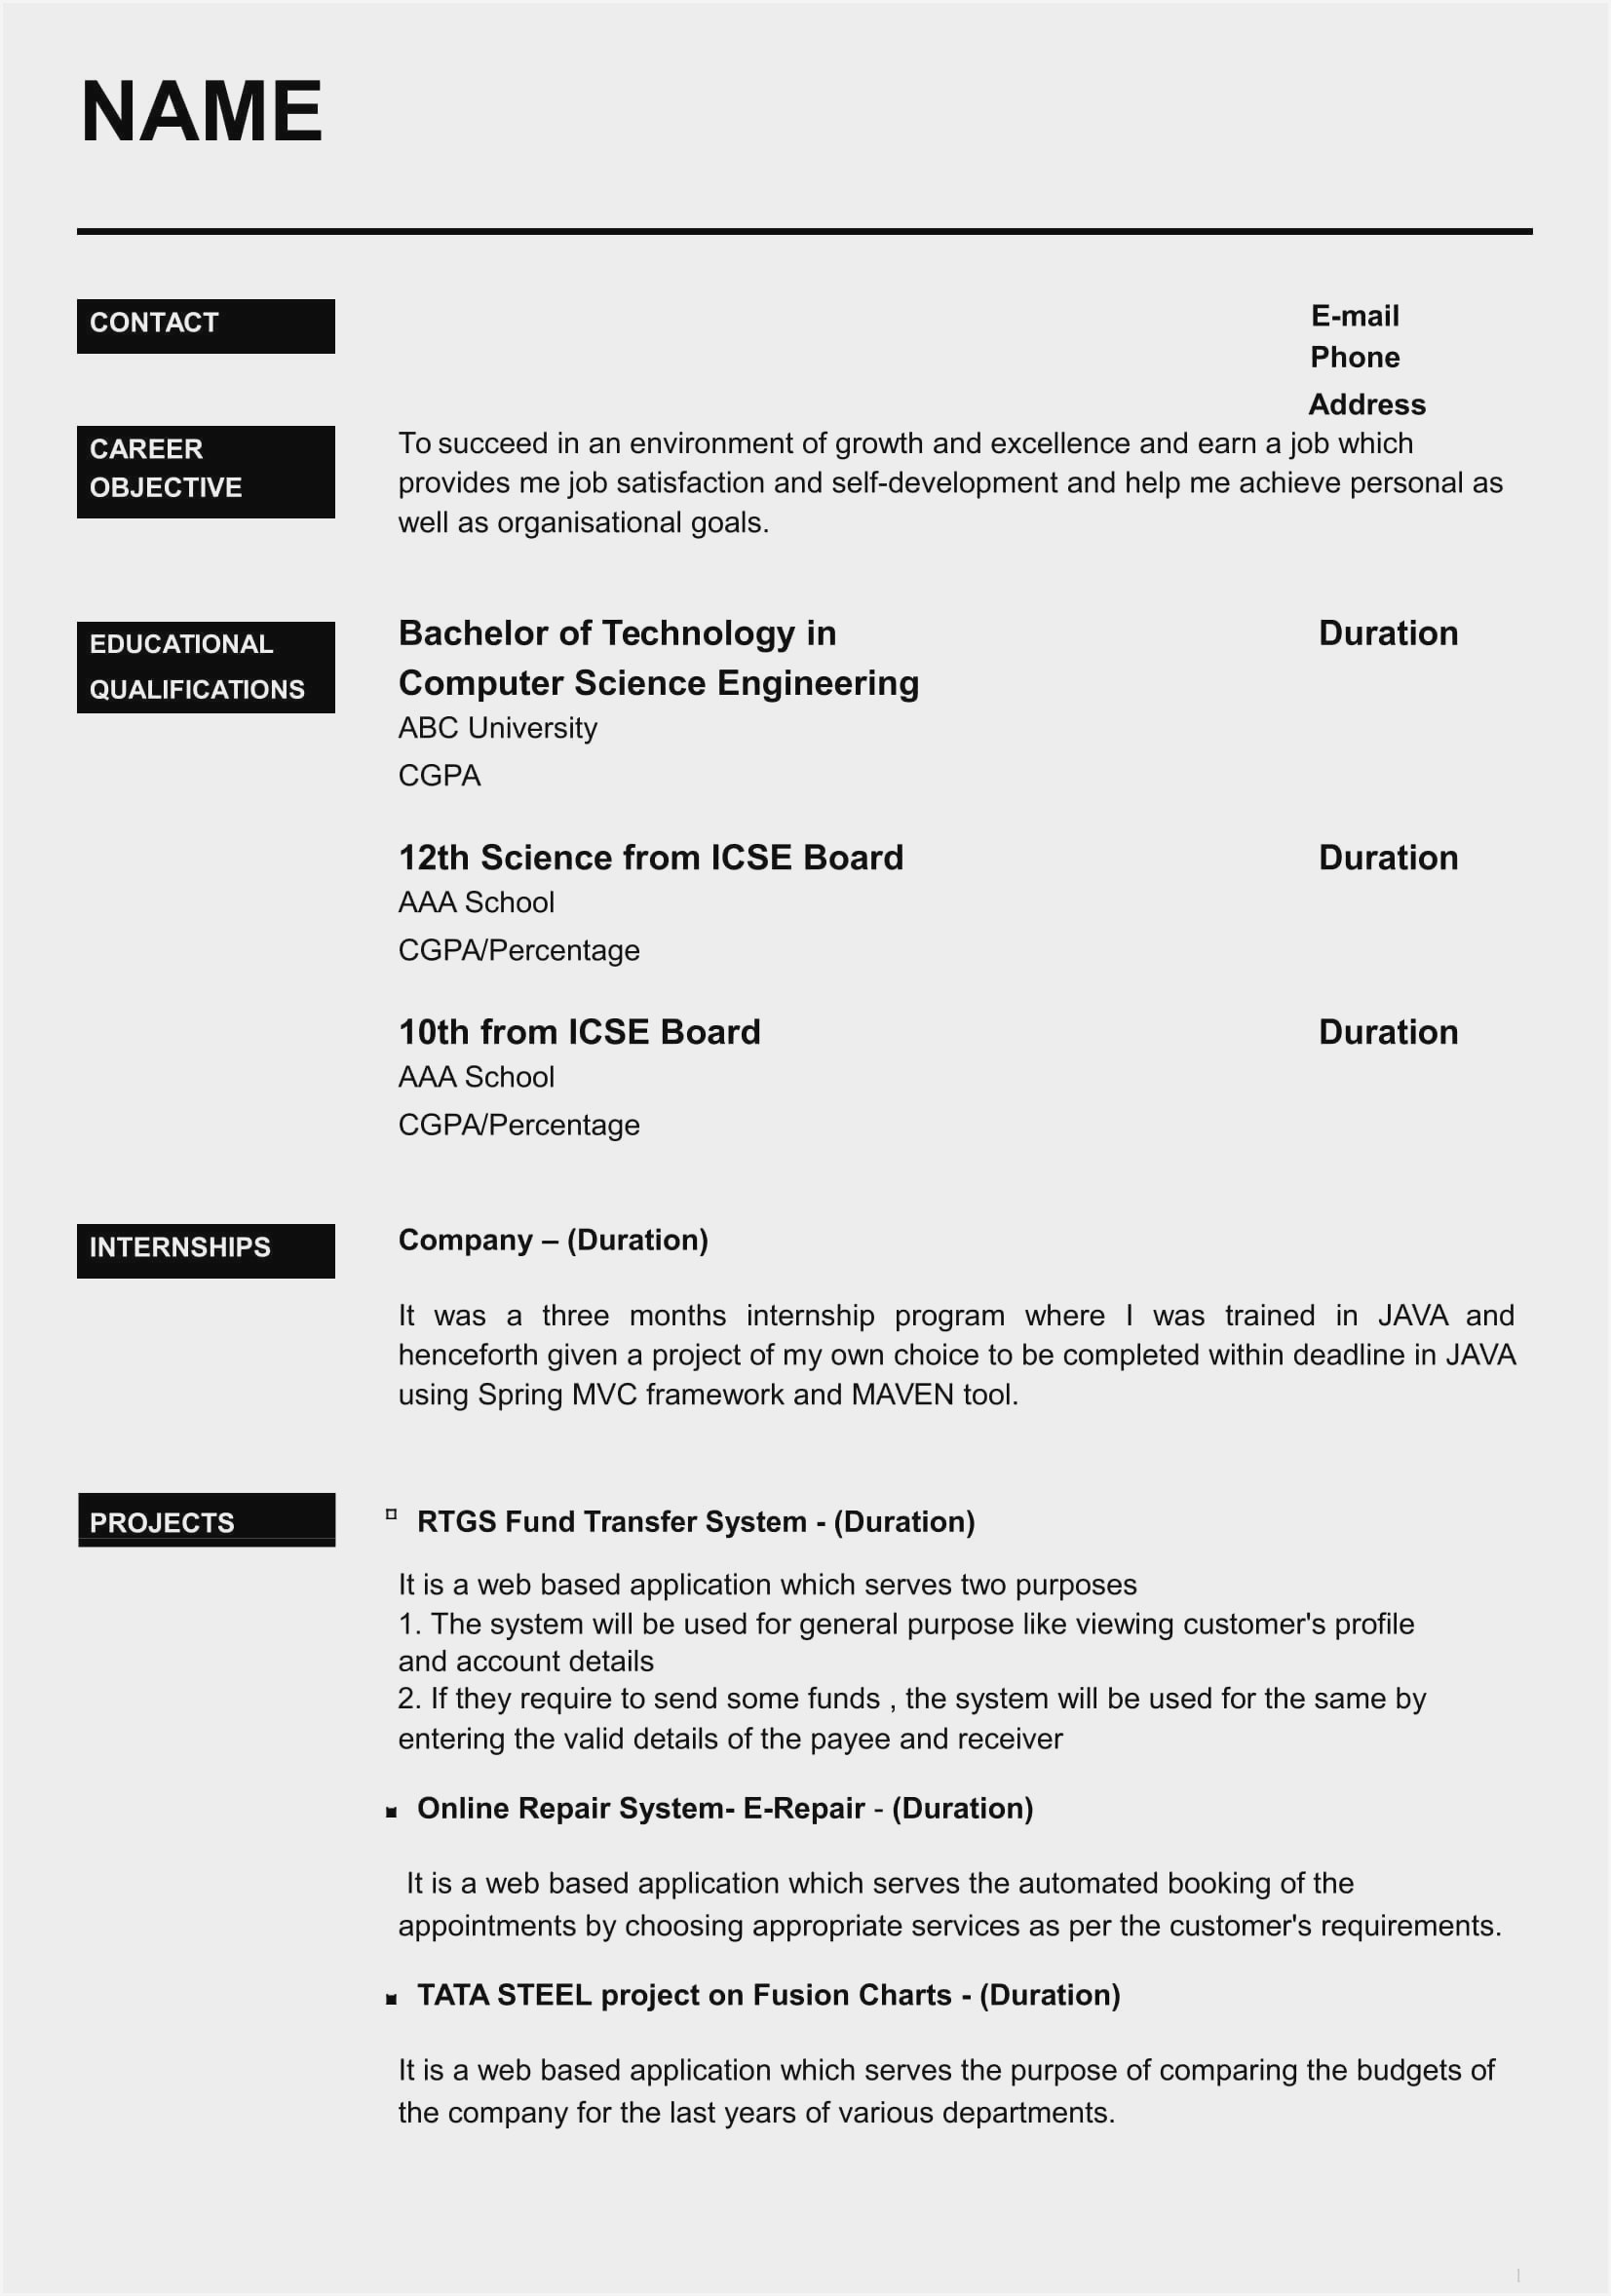 freshers resume model mca fresher format sample for engineers executive administrative Resume Mca Fresher Resume Format Download